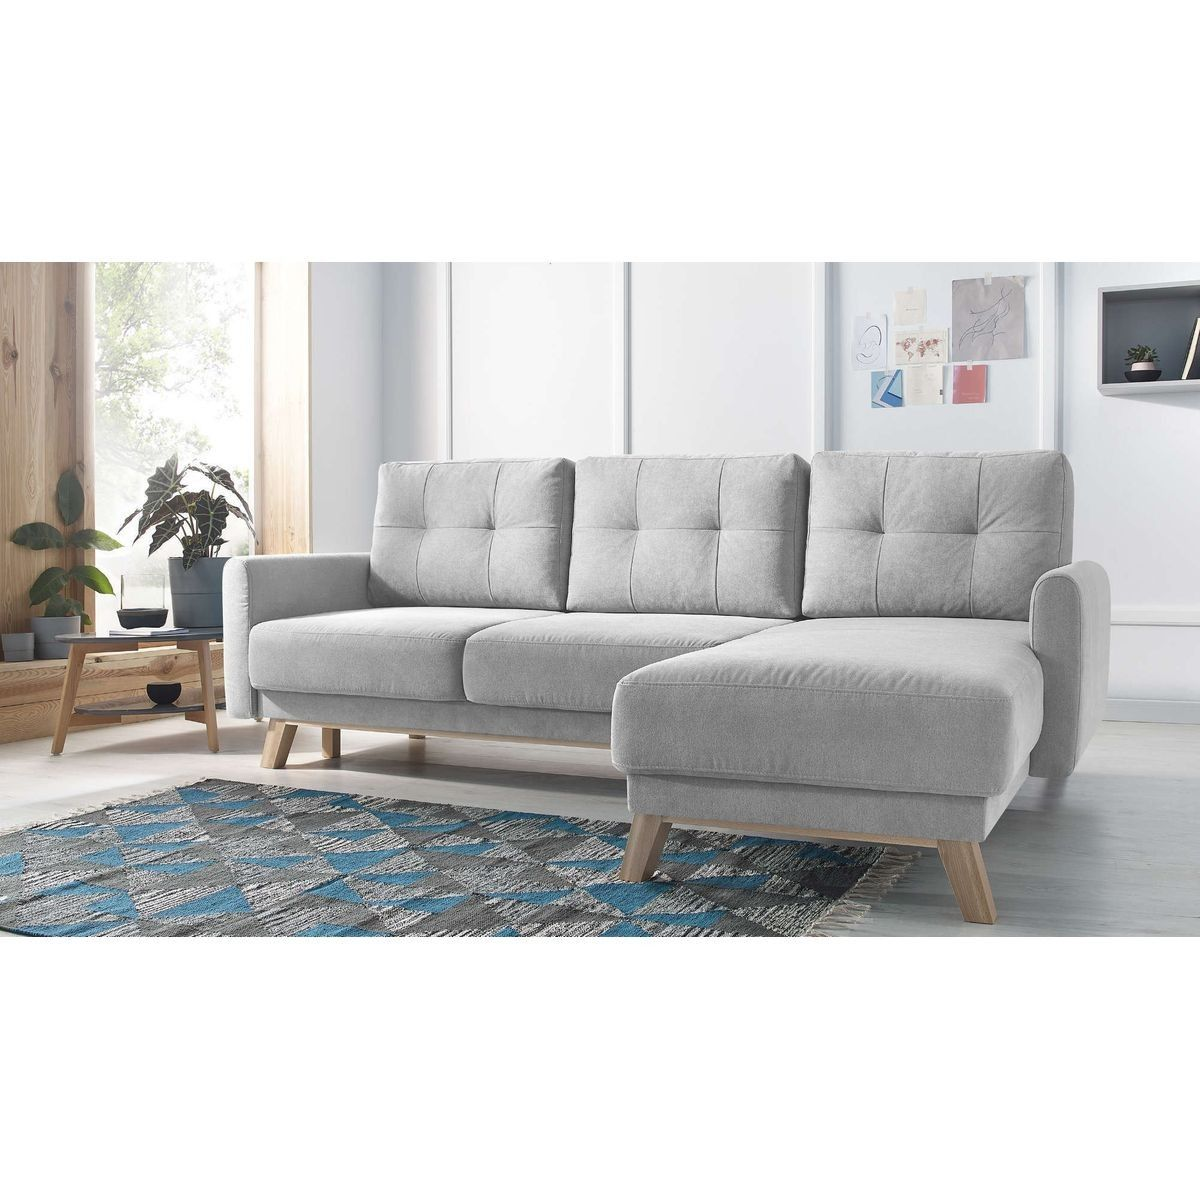 Groupon Canape D'angle Pas Cher Canapé D Angle Droit Convertible Balio Products Sofa